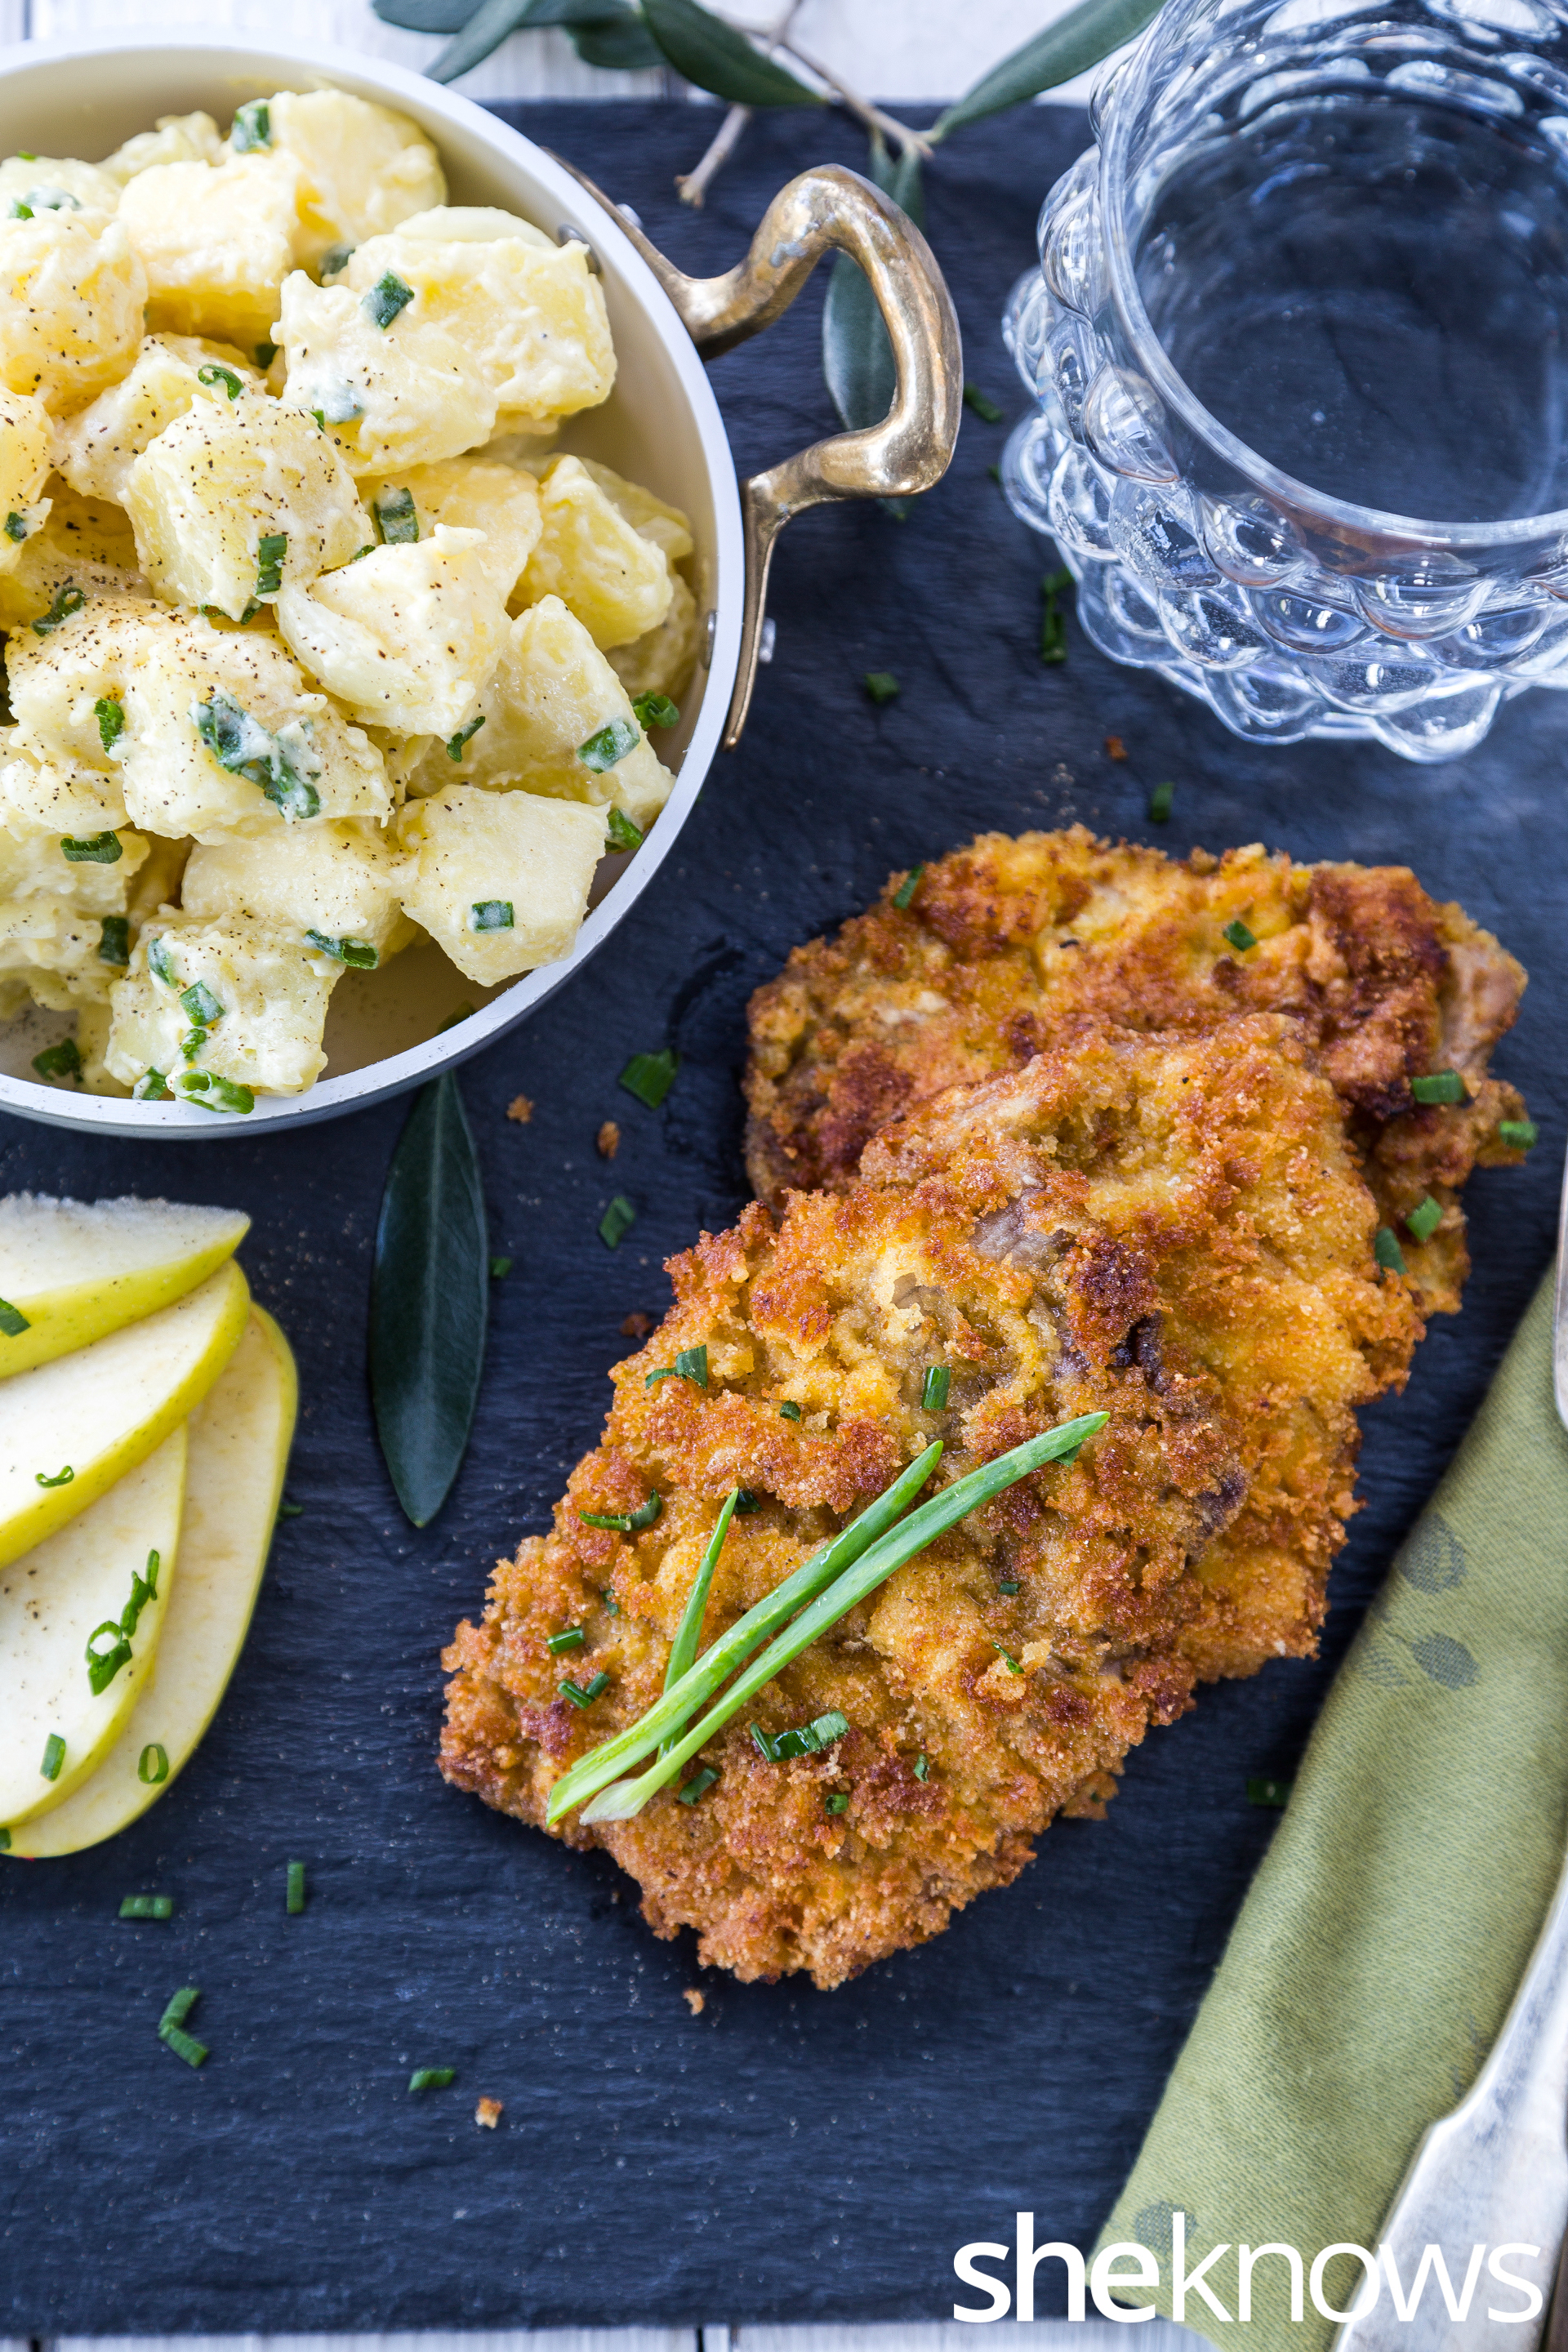 Pork-schnitzel-with-apple-and-potato-salad-vertical